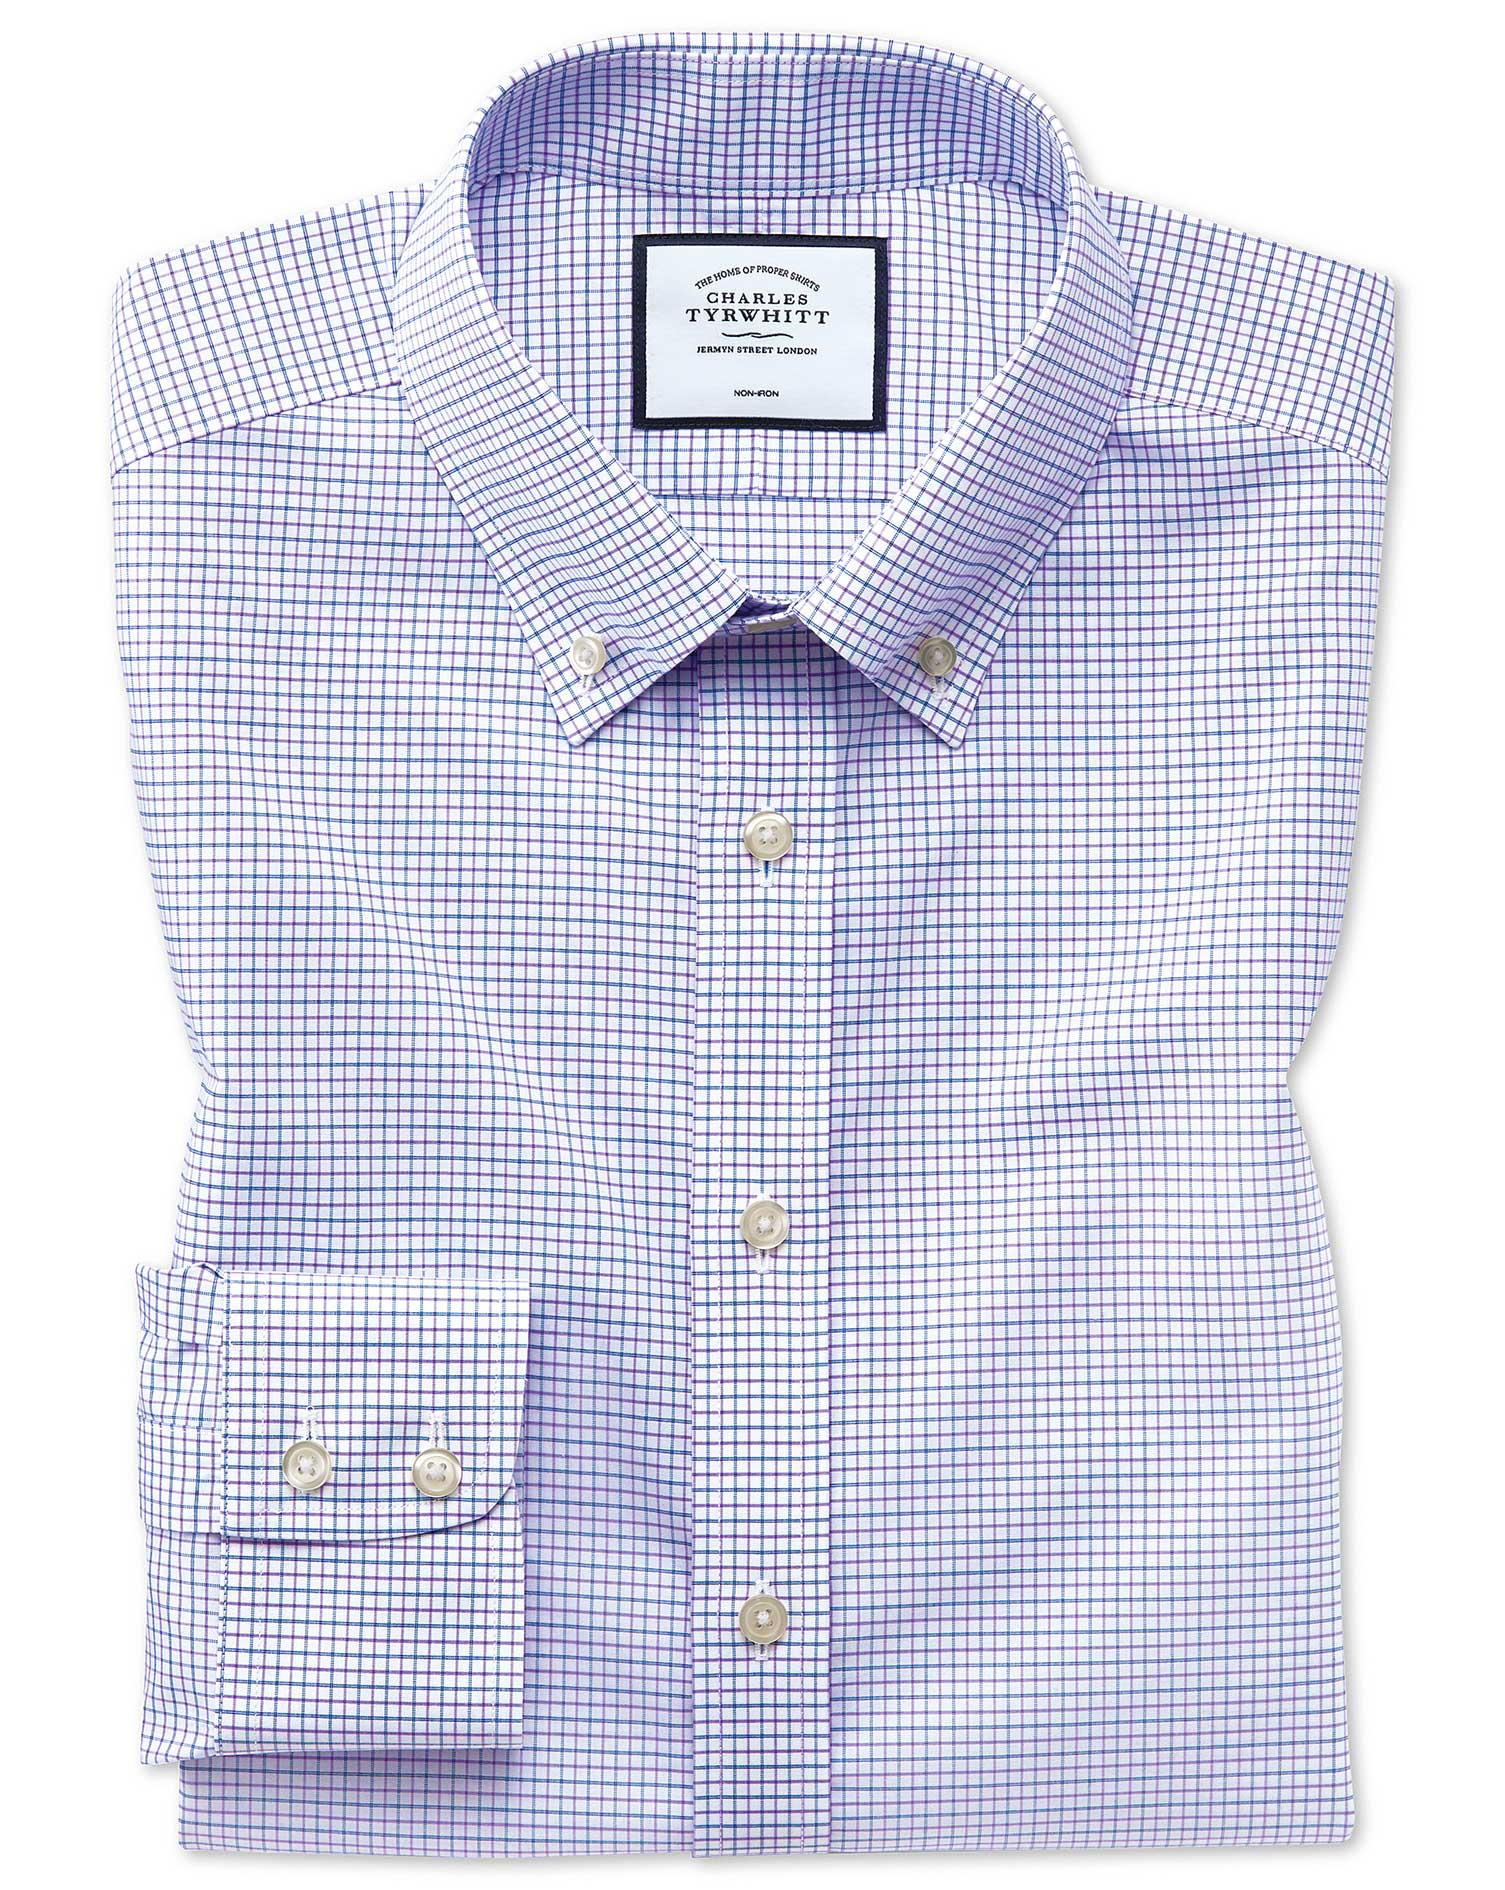 Slim Fit Non-Iron Button-Down Lilac and Blue Check Cotton Formal Shirt Single Cuff Size 16/34 by Cha